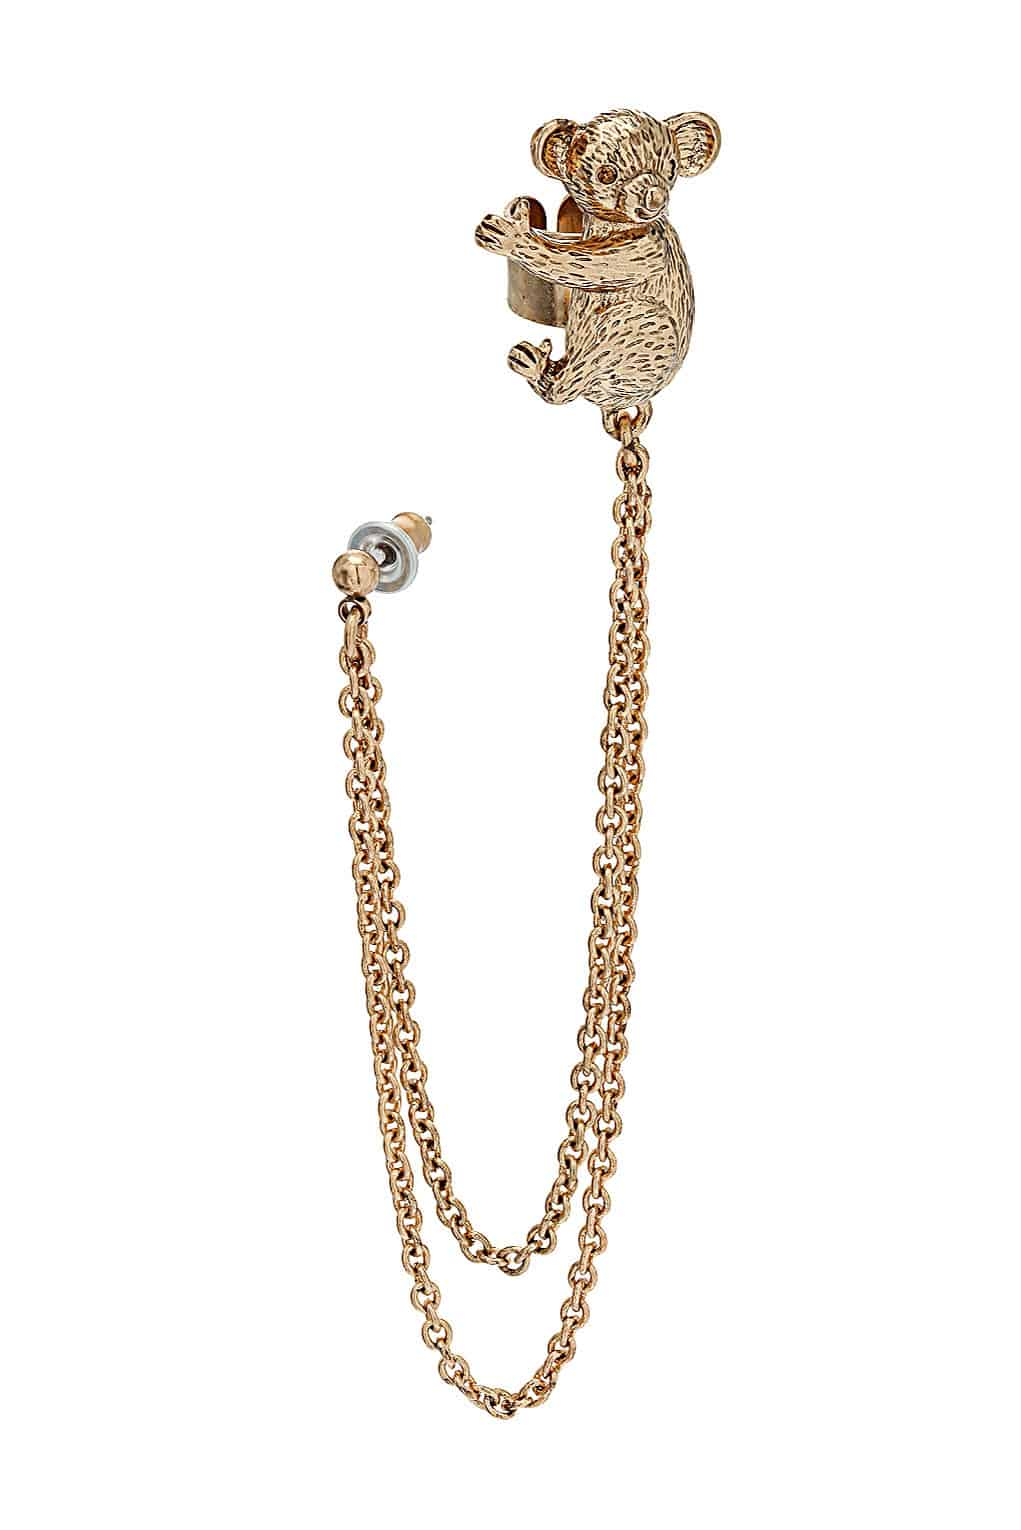 The New Bling: Ear Cuffs! Would You Wear Them Or Not? – The ...